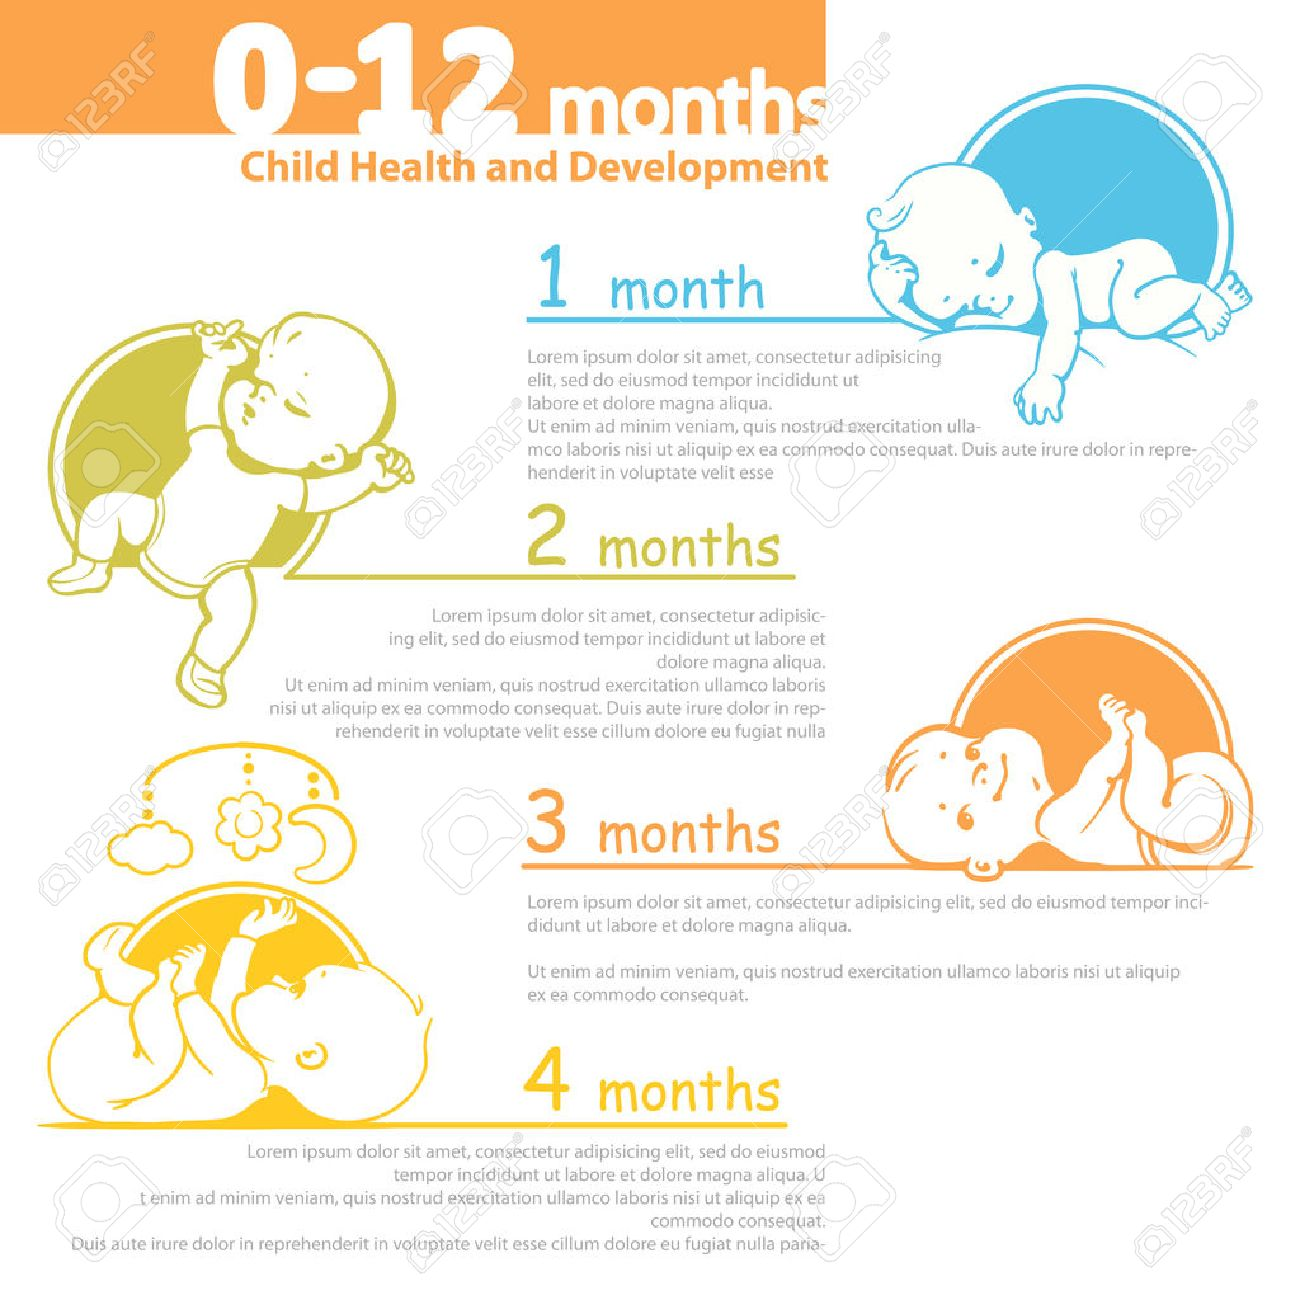 Set of child health and development icon. Presentation of baby growth from newborn to toddler with text. - 56582530